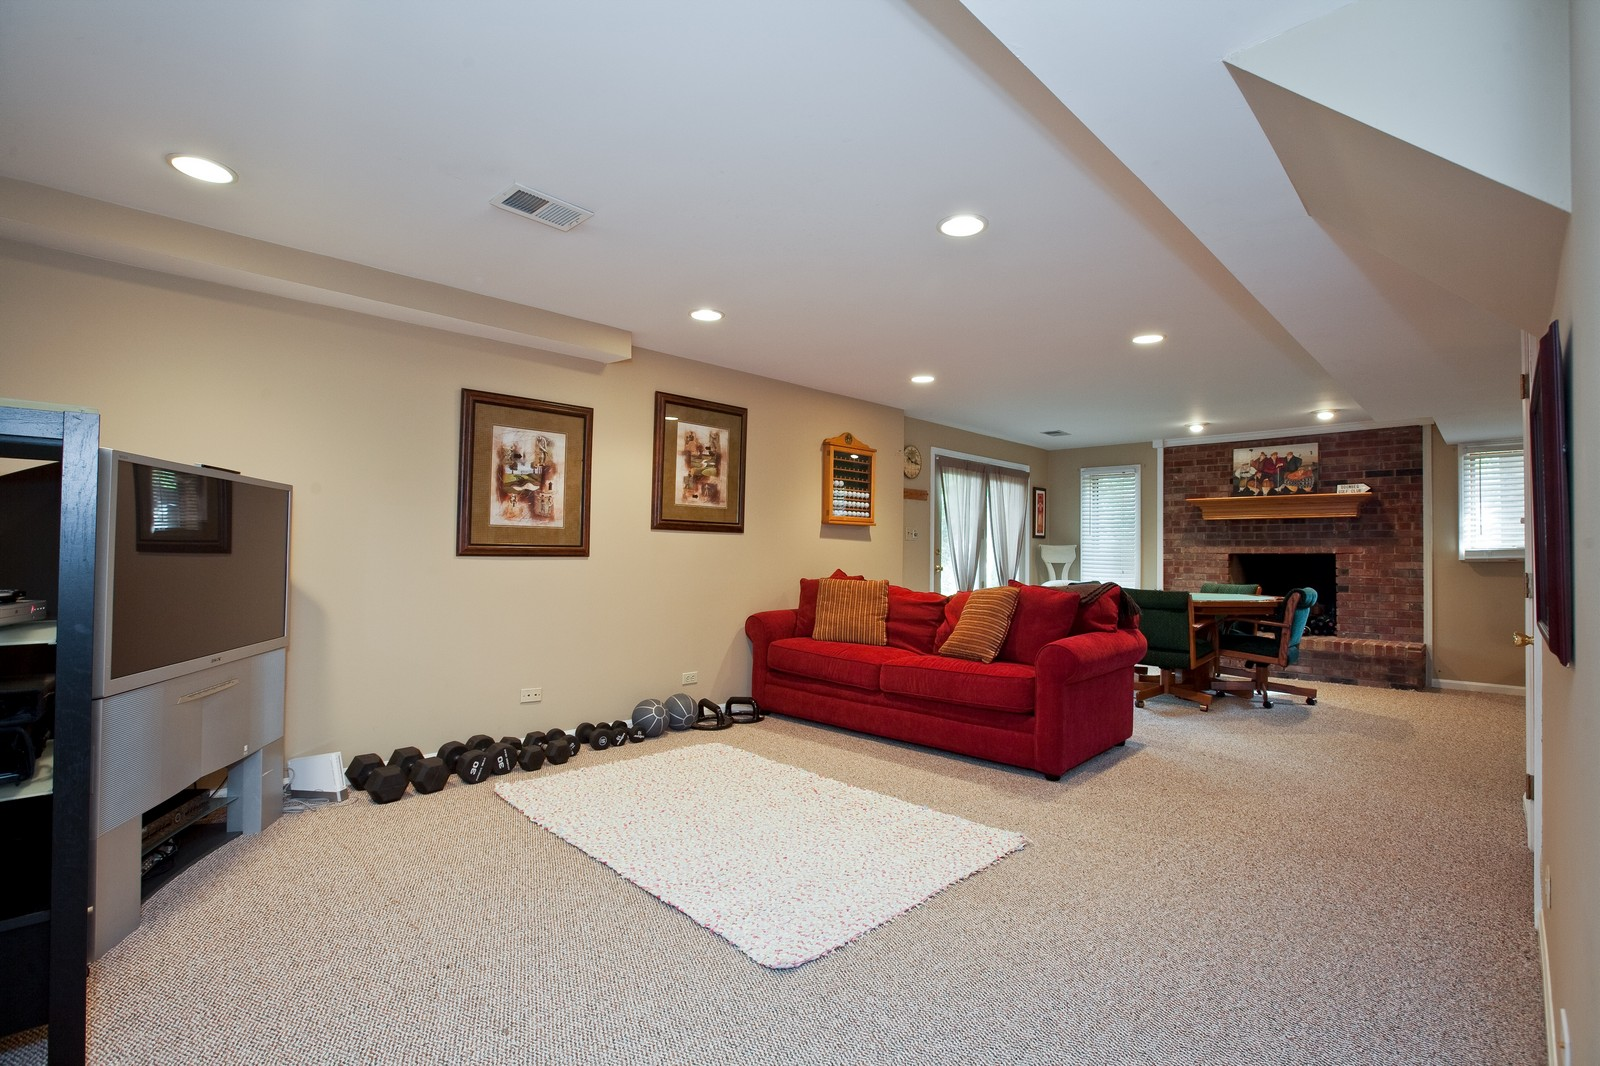 Real Estate Photography - 1031 W. 119th St, Lemont, IL, 60439 - Recreational Room